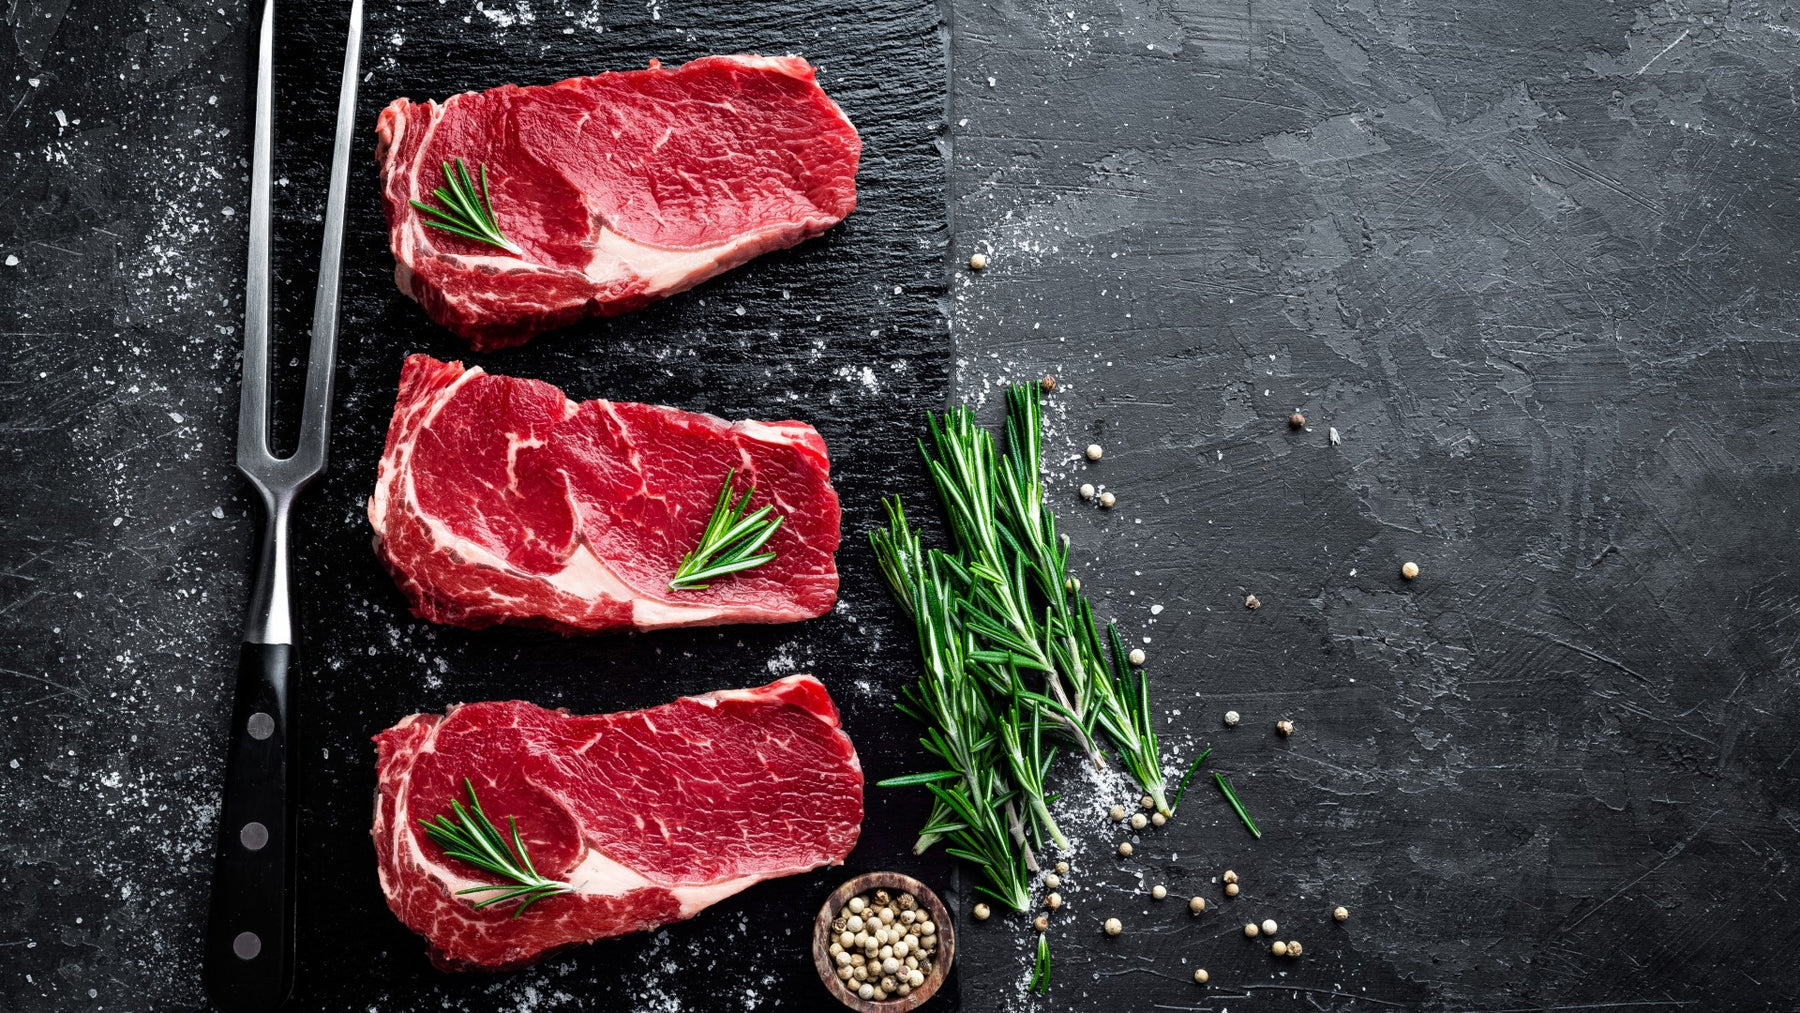 Red Meat is Safe and Healthy - New Comprehensive Study Reveals